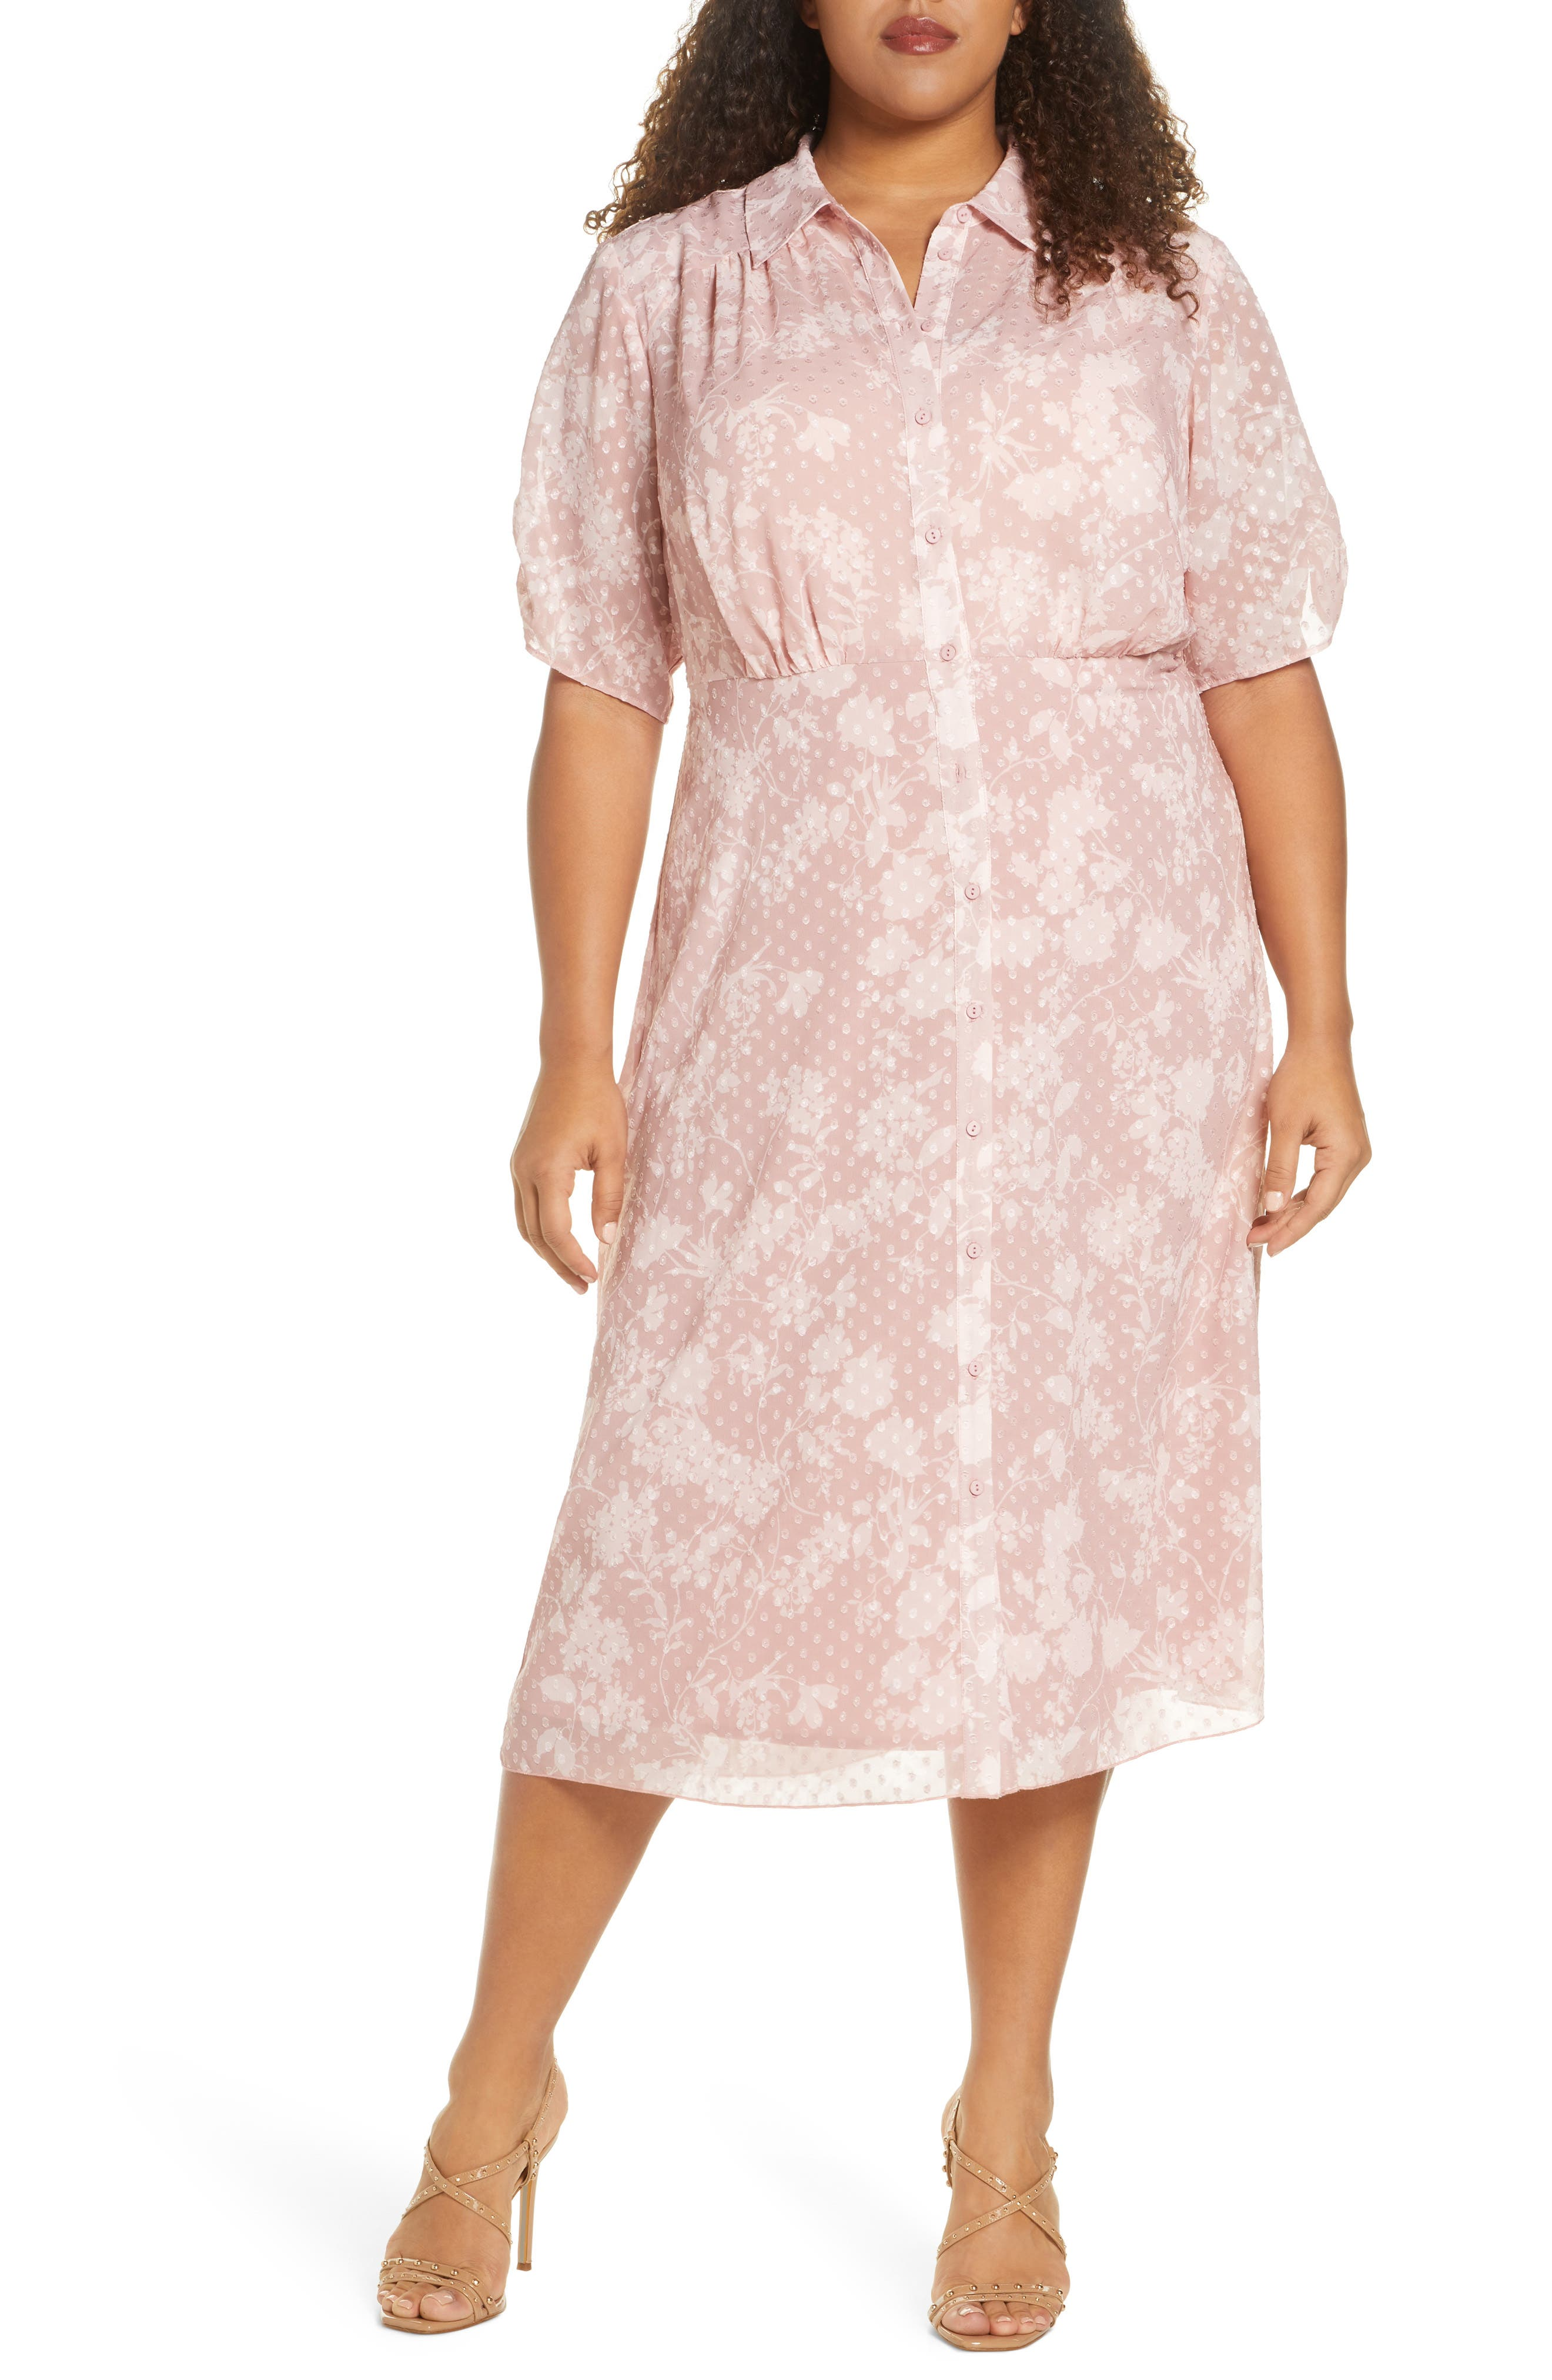 Modest, Mature, Mrs. Vintage Dresses – 20s, 30s, 40s, 50s, 60s Plus Size Womens Maree Pour Toi Swiss Dot Chiffon Shirtdress Size 14W - Pink $149.00 AT vintagedancer.com